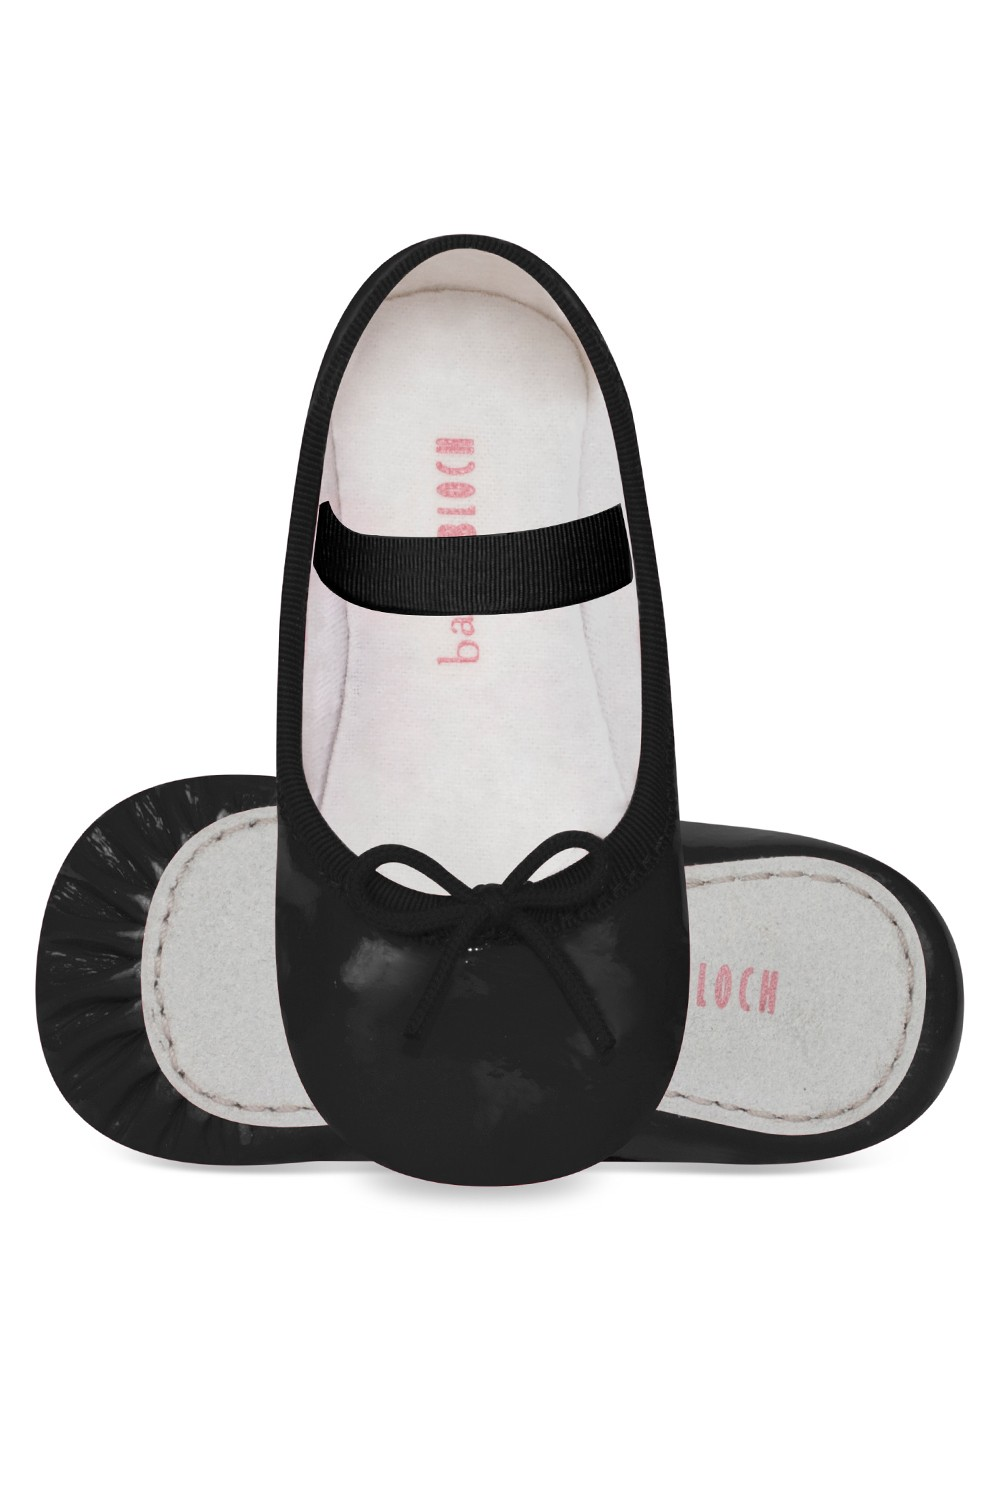 Baby Pink Cha Cha Pre-walker Ballet Flat Shoes Babies Fashion Shoes